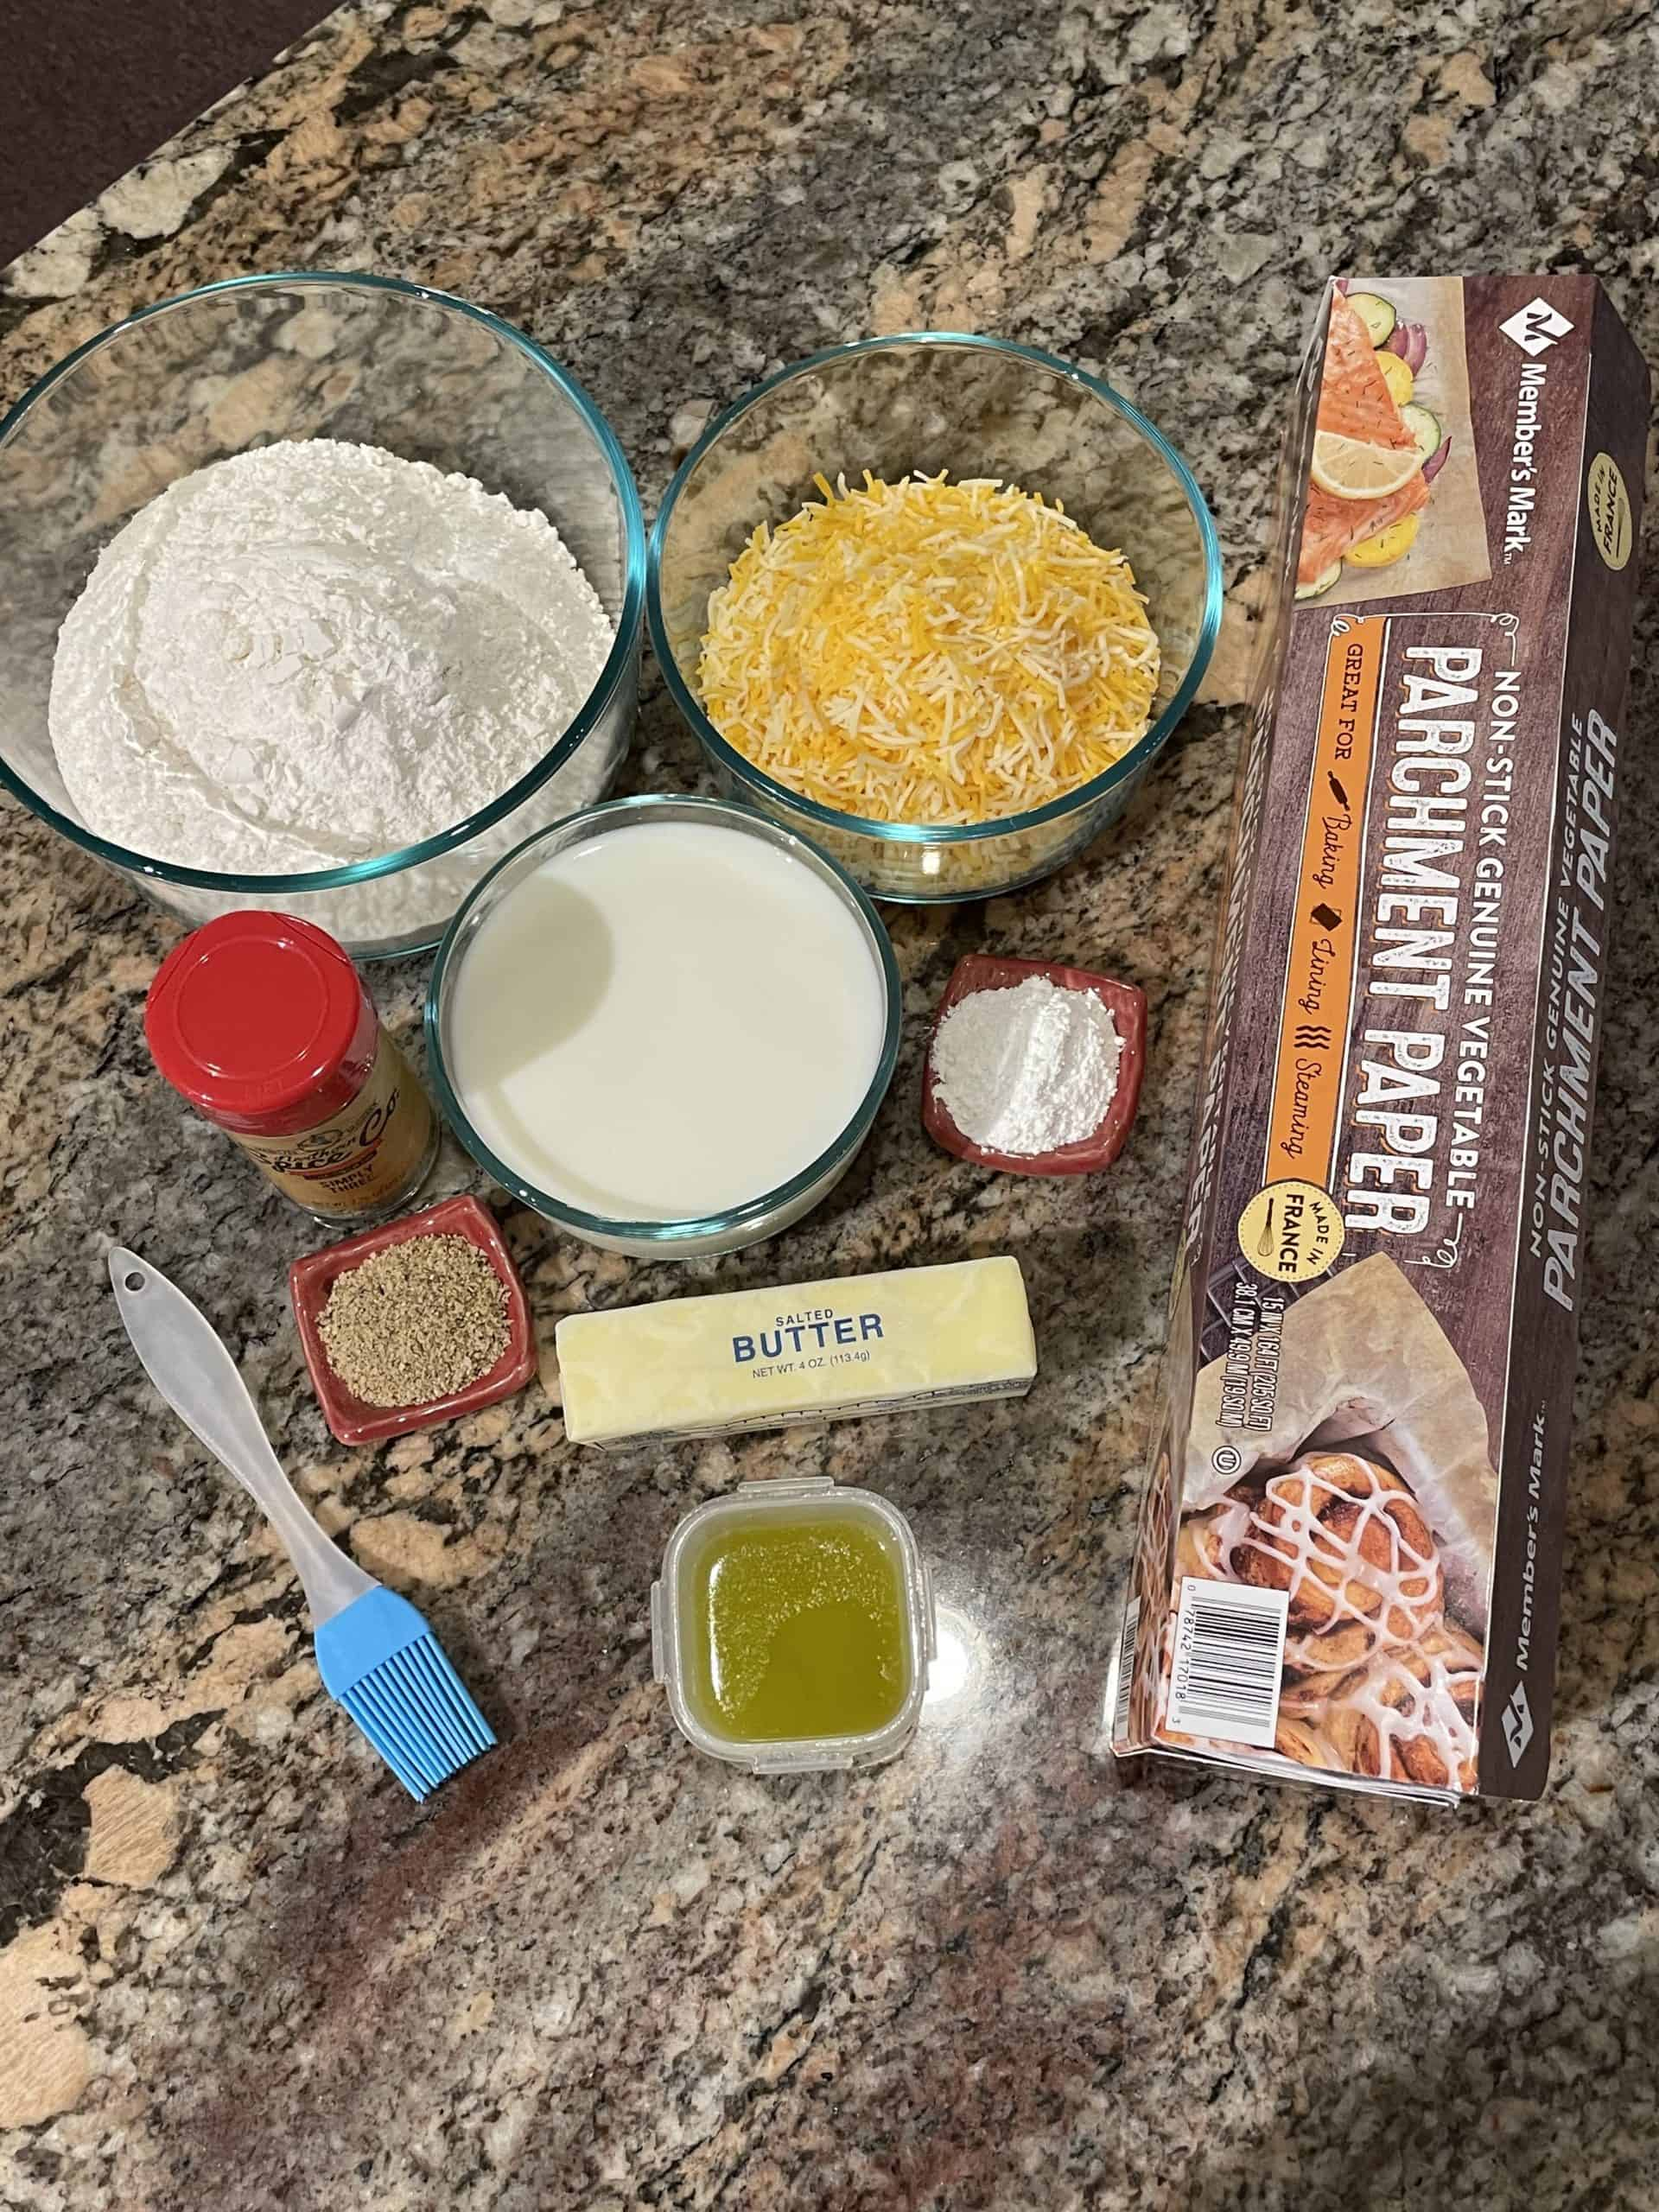 Cheddar Biscuits Ingredient - Flour, baking powder, Simply Three seasoning, butter, shredded cheddar cheese, and milk.